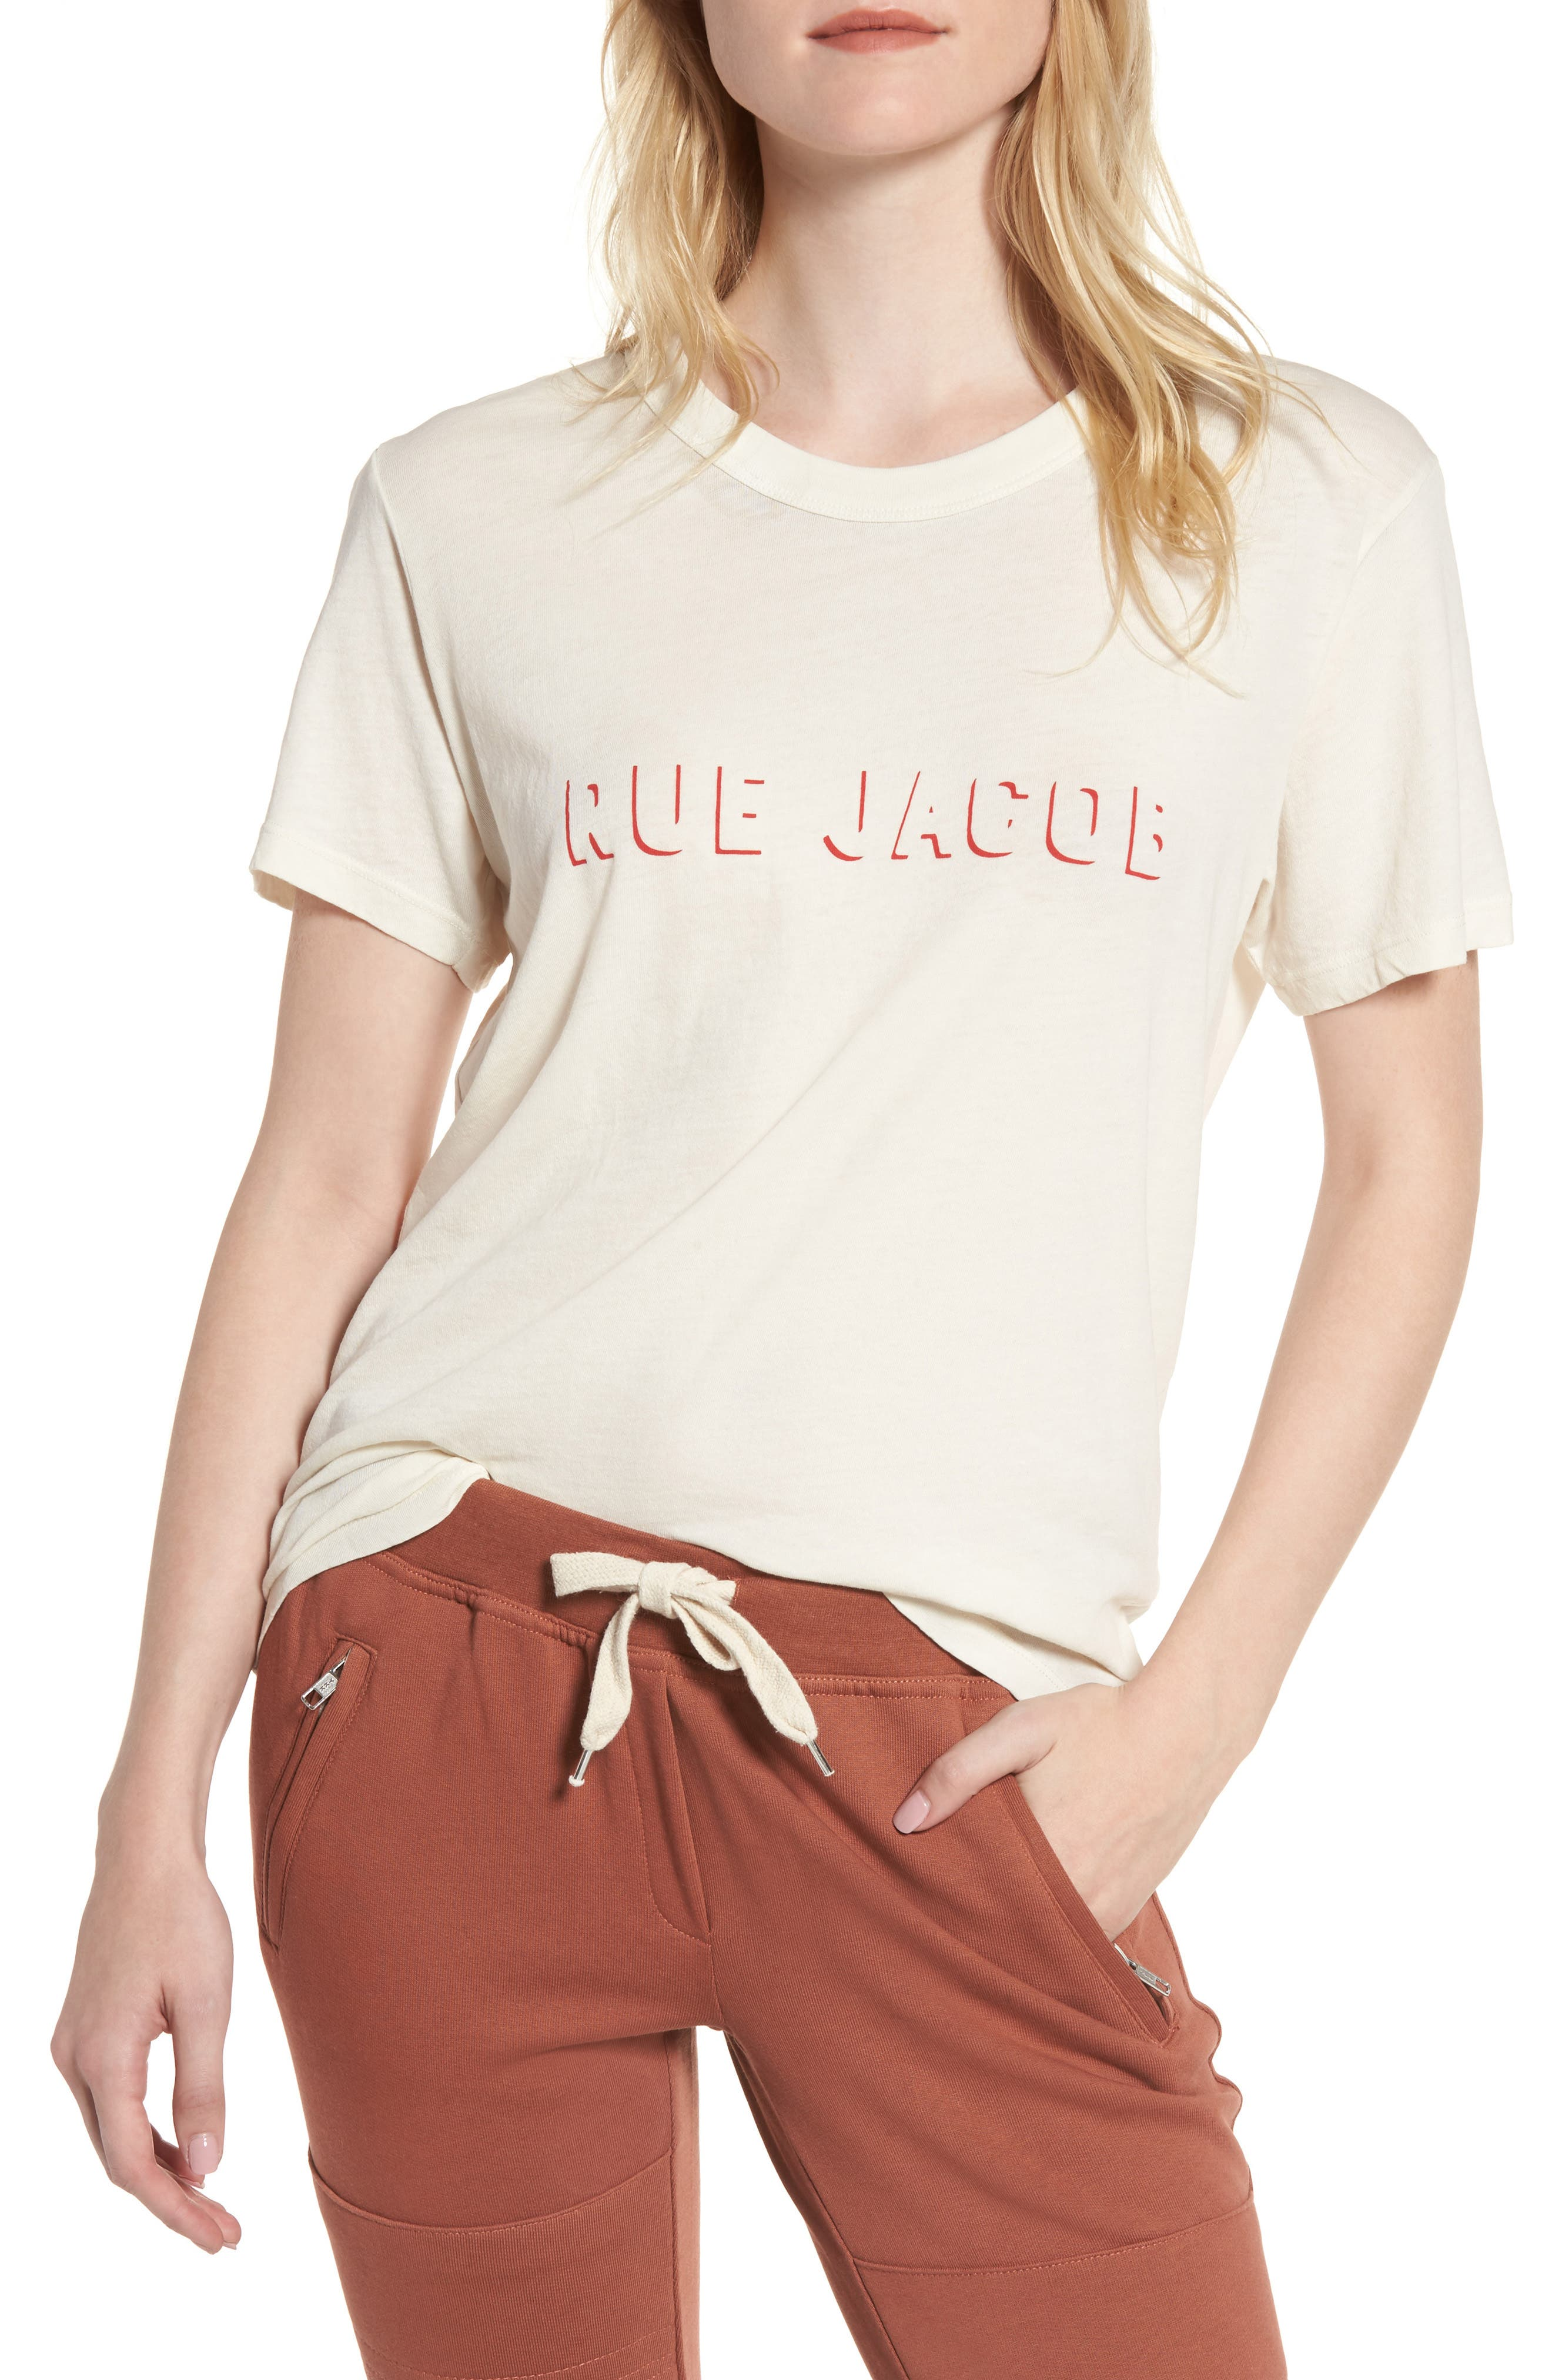 Main Image - Sincerely Jules Rue Jacob Tee